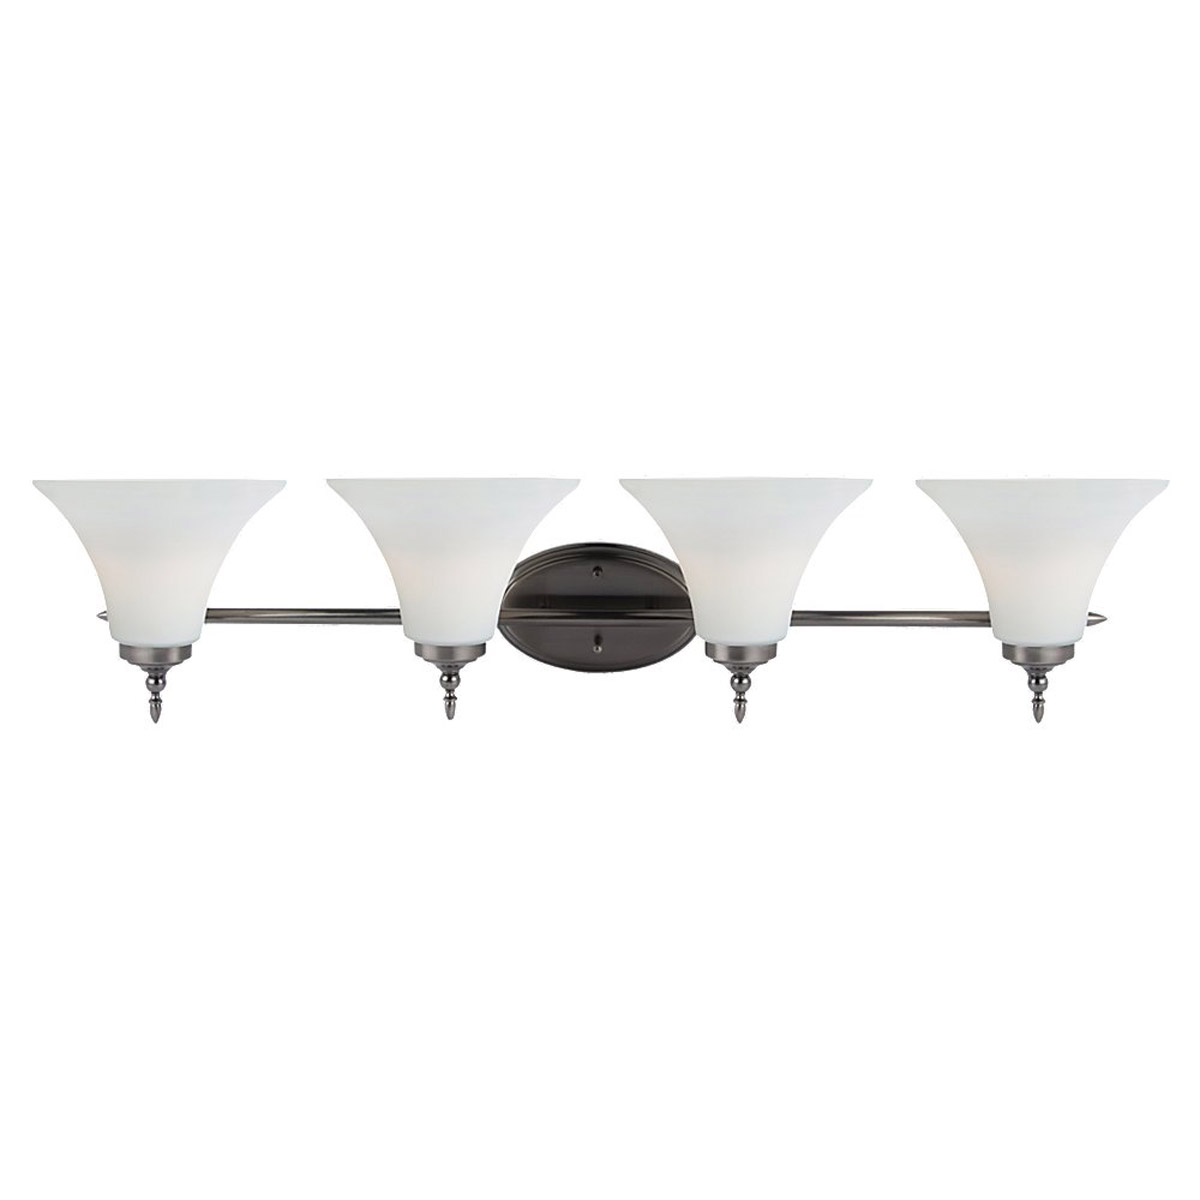 Sea Gull Lighting Montreal 4 Light Bath Vanity in Antique Brushed Nickel 41183BLE-965